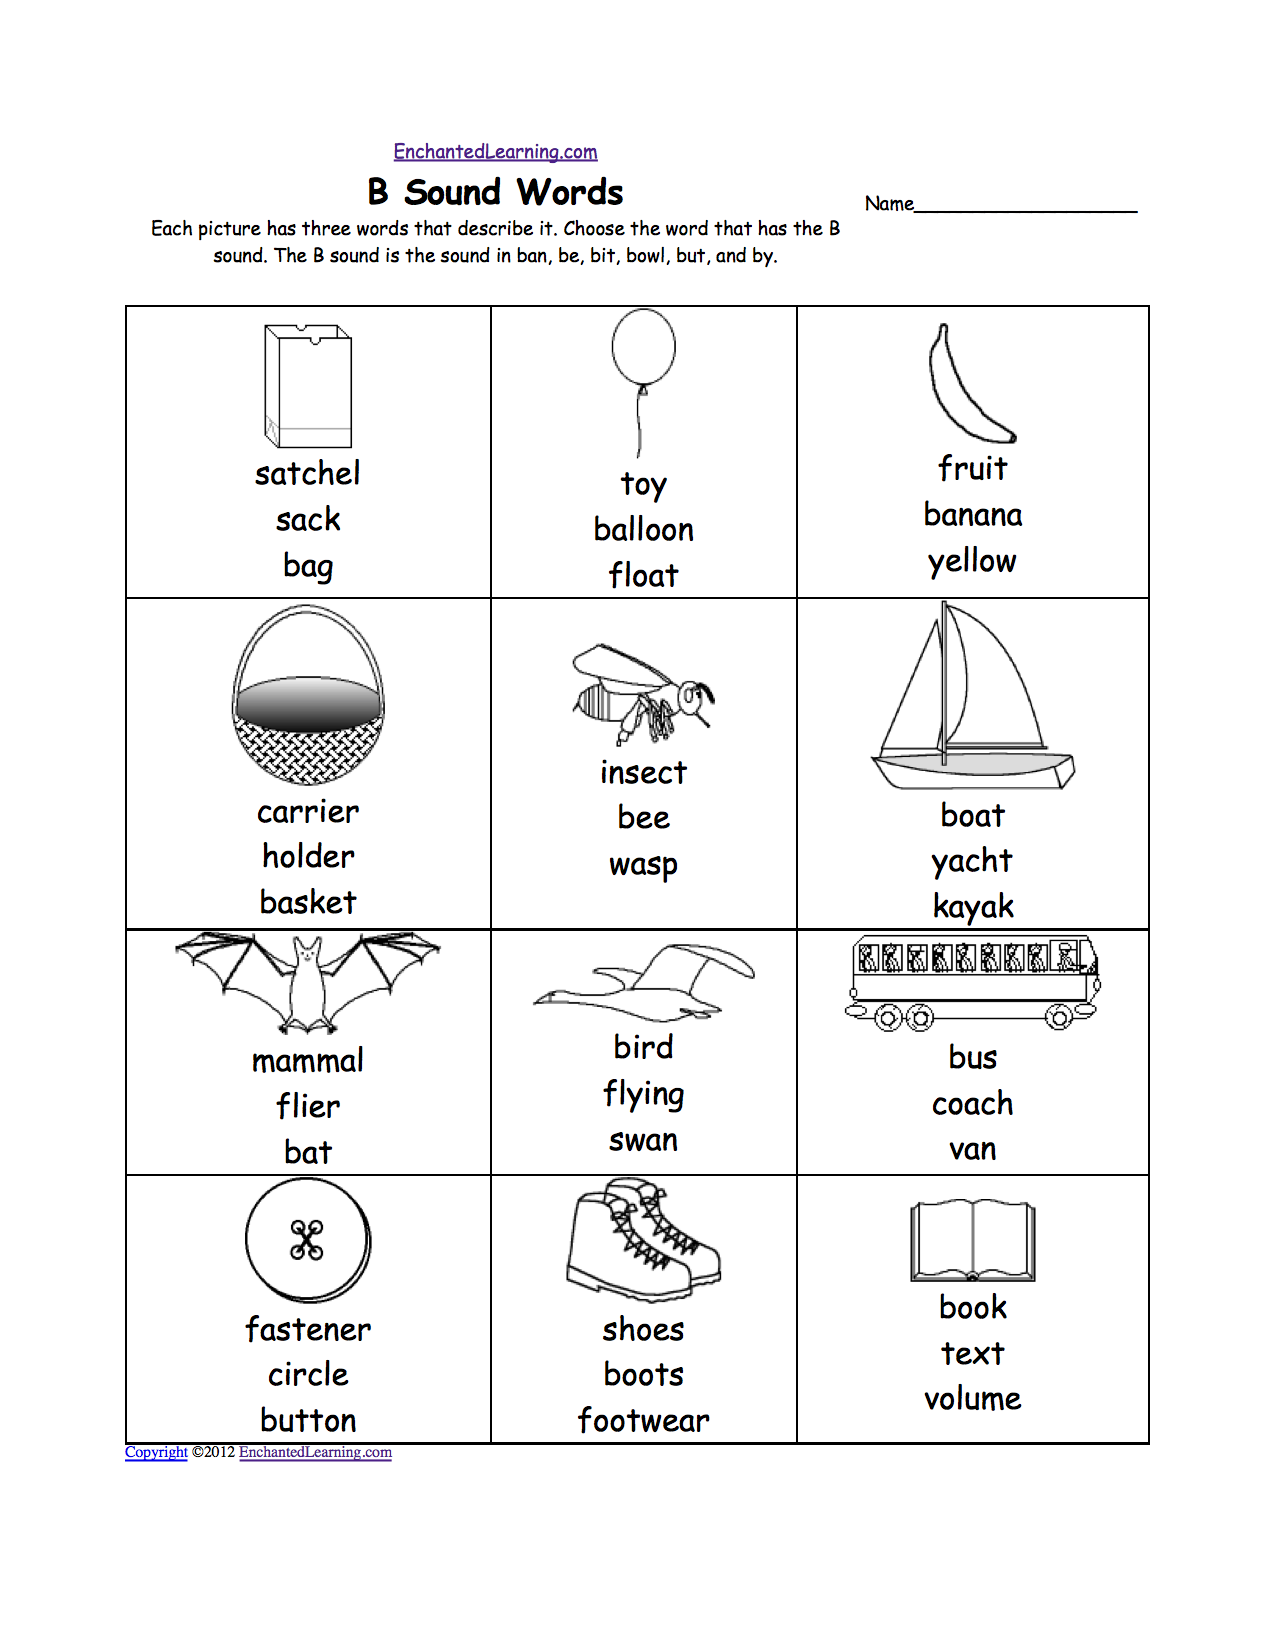 Aldiablosus  Picturesque Phonics Worksheets Multiple Choice Worksheets To Print  With Magnificent Quotbquot Sound Phonics Worksheet Multiple Choice Each Picture Has Three Words That Describe It Choose The Word That Has A Quotbquot Sound The Quotbquot Sound Is The Sound  With Enchanting World History Worksheets Also Area Perimeter Worksheets In Addition Environmental Science Merit Badge Worksheet And Dna The Molecule Of Heredity Worksheet Answers As Well As Probability Worksheets Pdf Additionally Comprehension Worksheets For Grade  From Enchantedlearningcom With Aldiablosus  Magnificent Phonics Worksheets Multiple Choice Worksheets To Print  With Enchanting Quotbquot Sound Phonics Worksheet Multiple Choice Each Picture Has Three Words That Describe It Choose The Word That Has A Quotbquot Sound The Quotbquot Sound Is The Sound  And Picturesque World History Worksheets Also Area Perimeter Worksheets In Addition Environmental Science Merit Badge Worksheet From Enchantedlearningcom